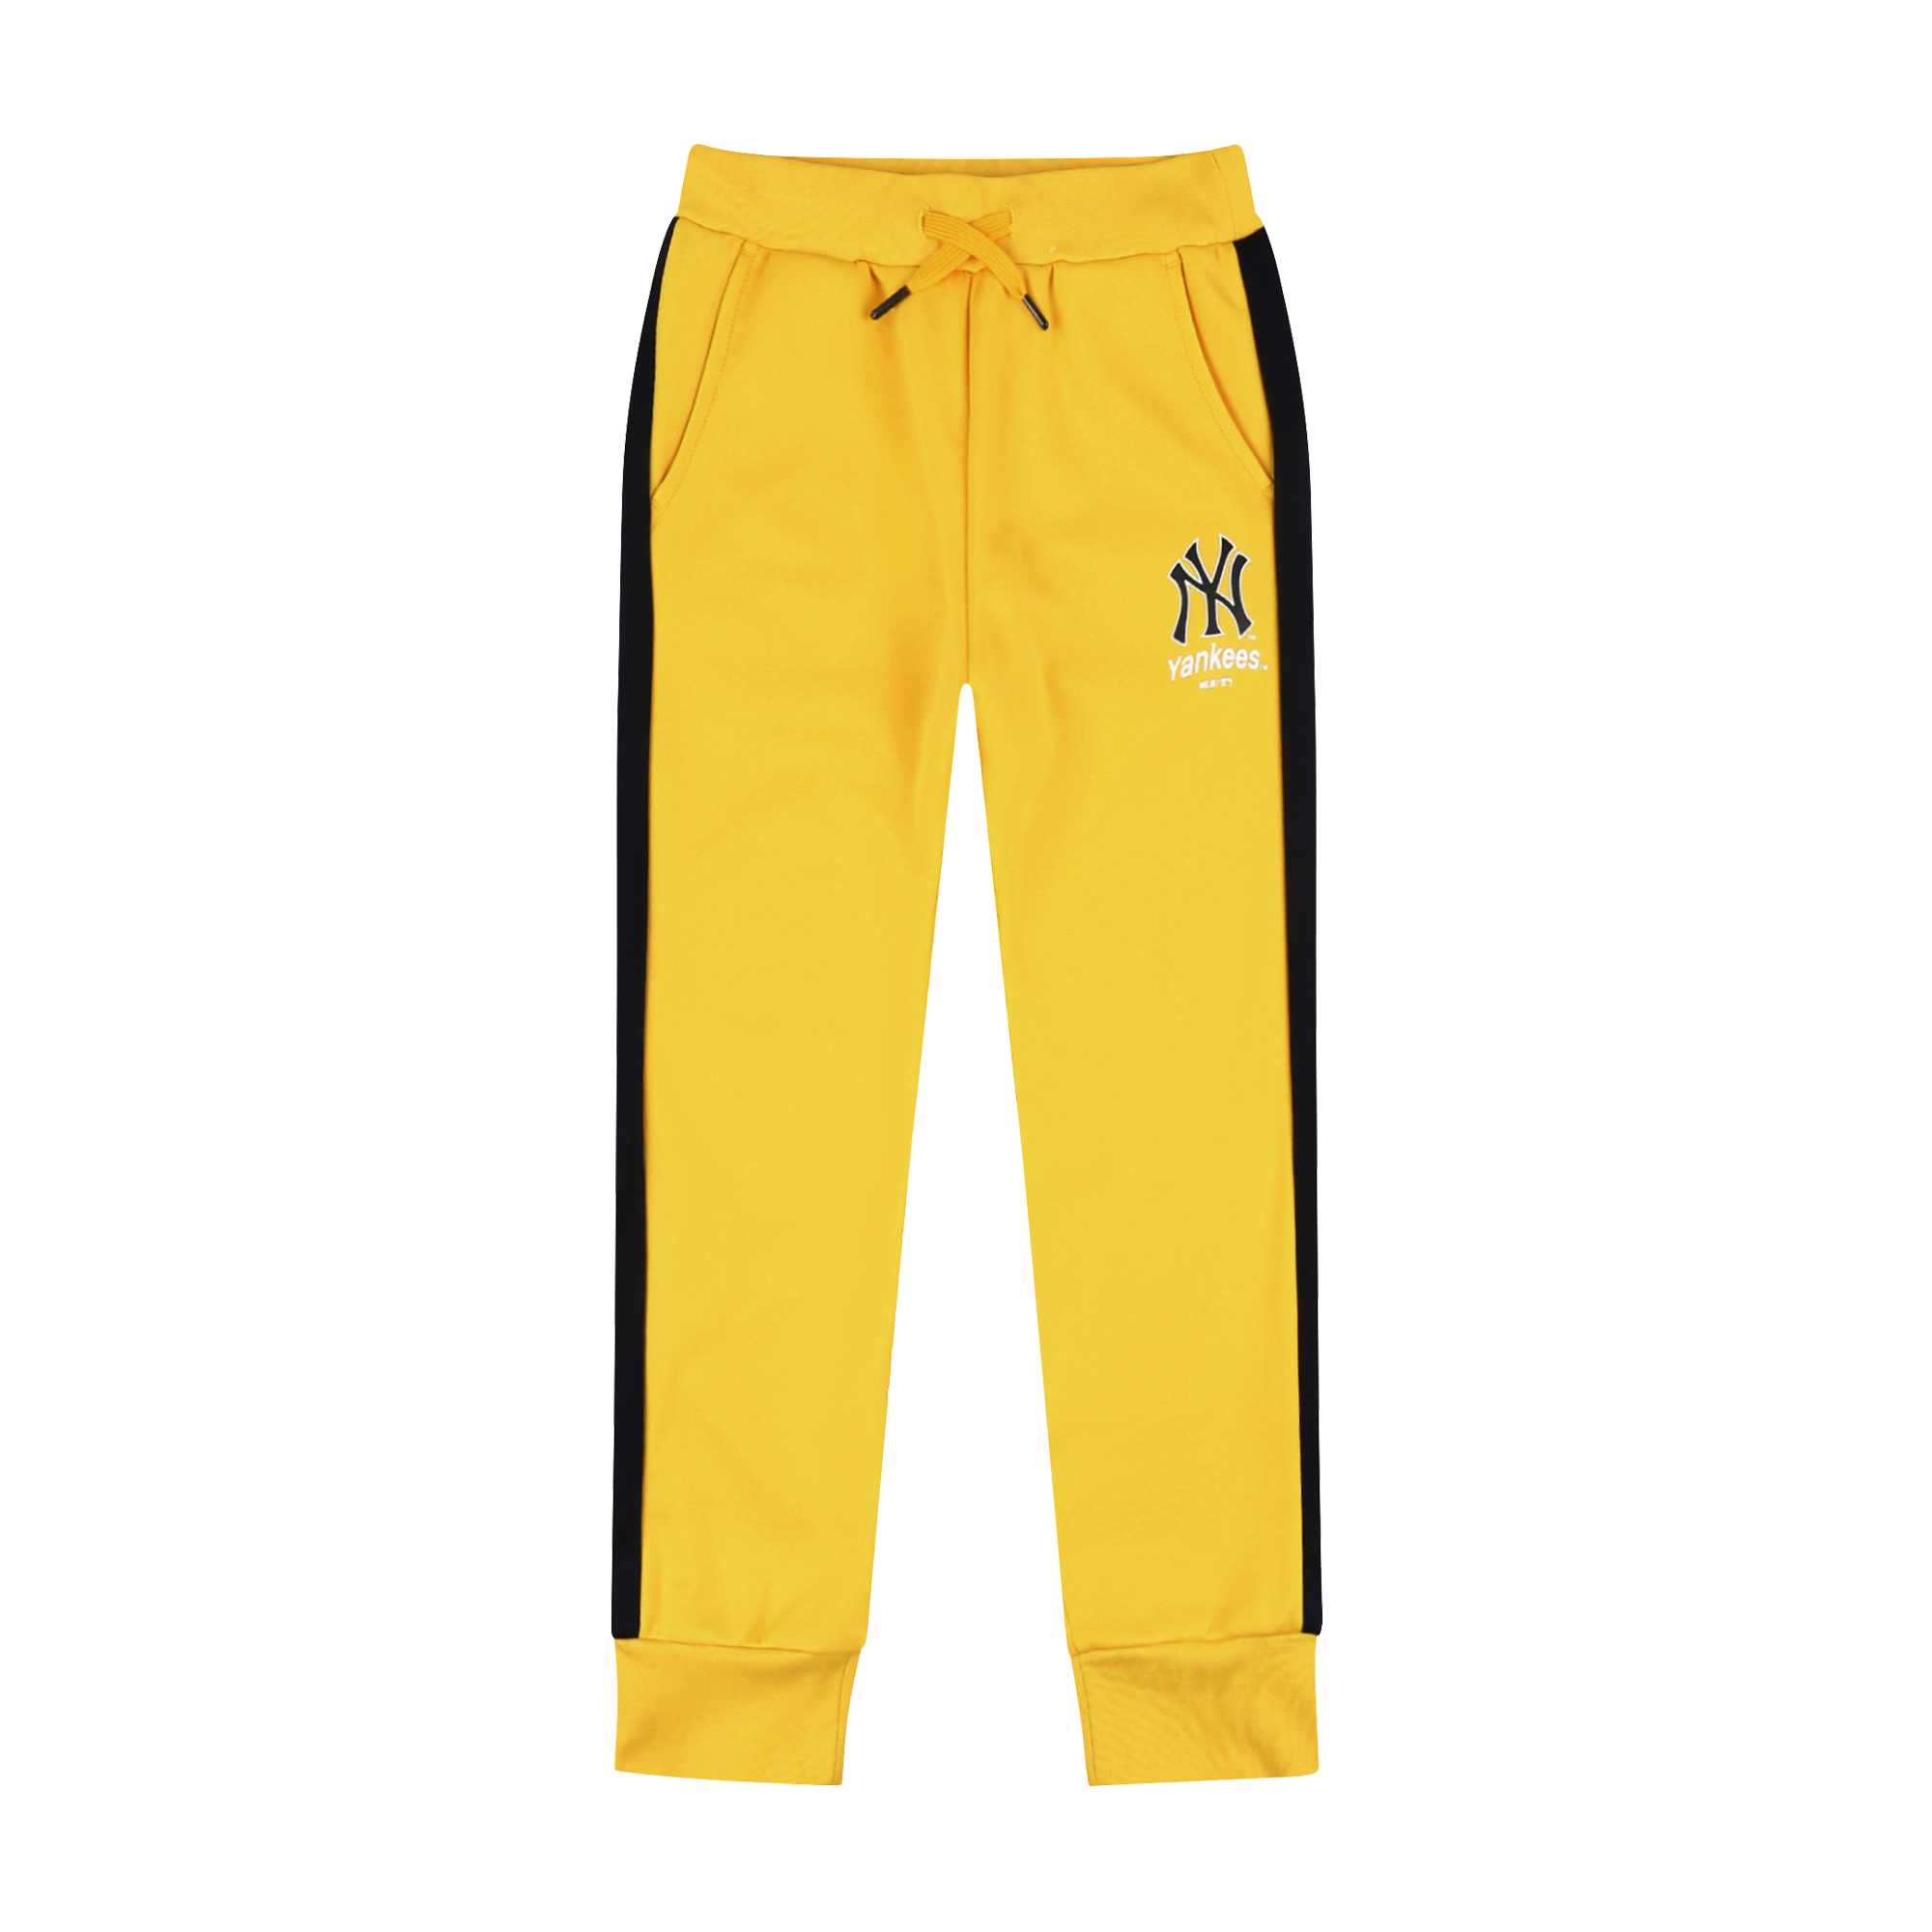 NEW YORK YANKEES UNISEX SIDELINE BICOLOR TRAINING PANTS